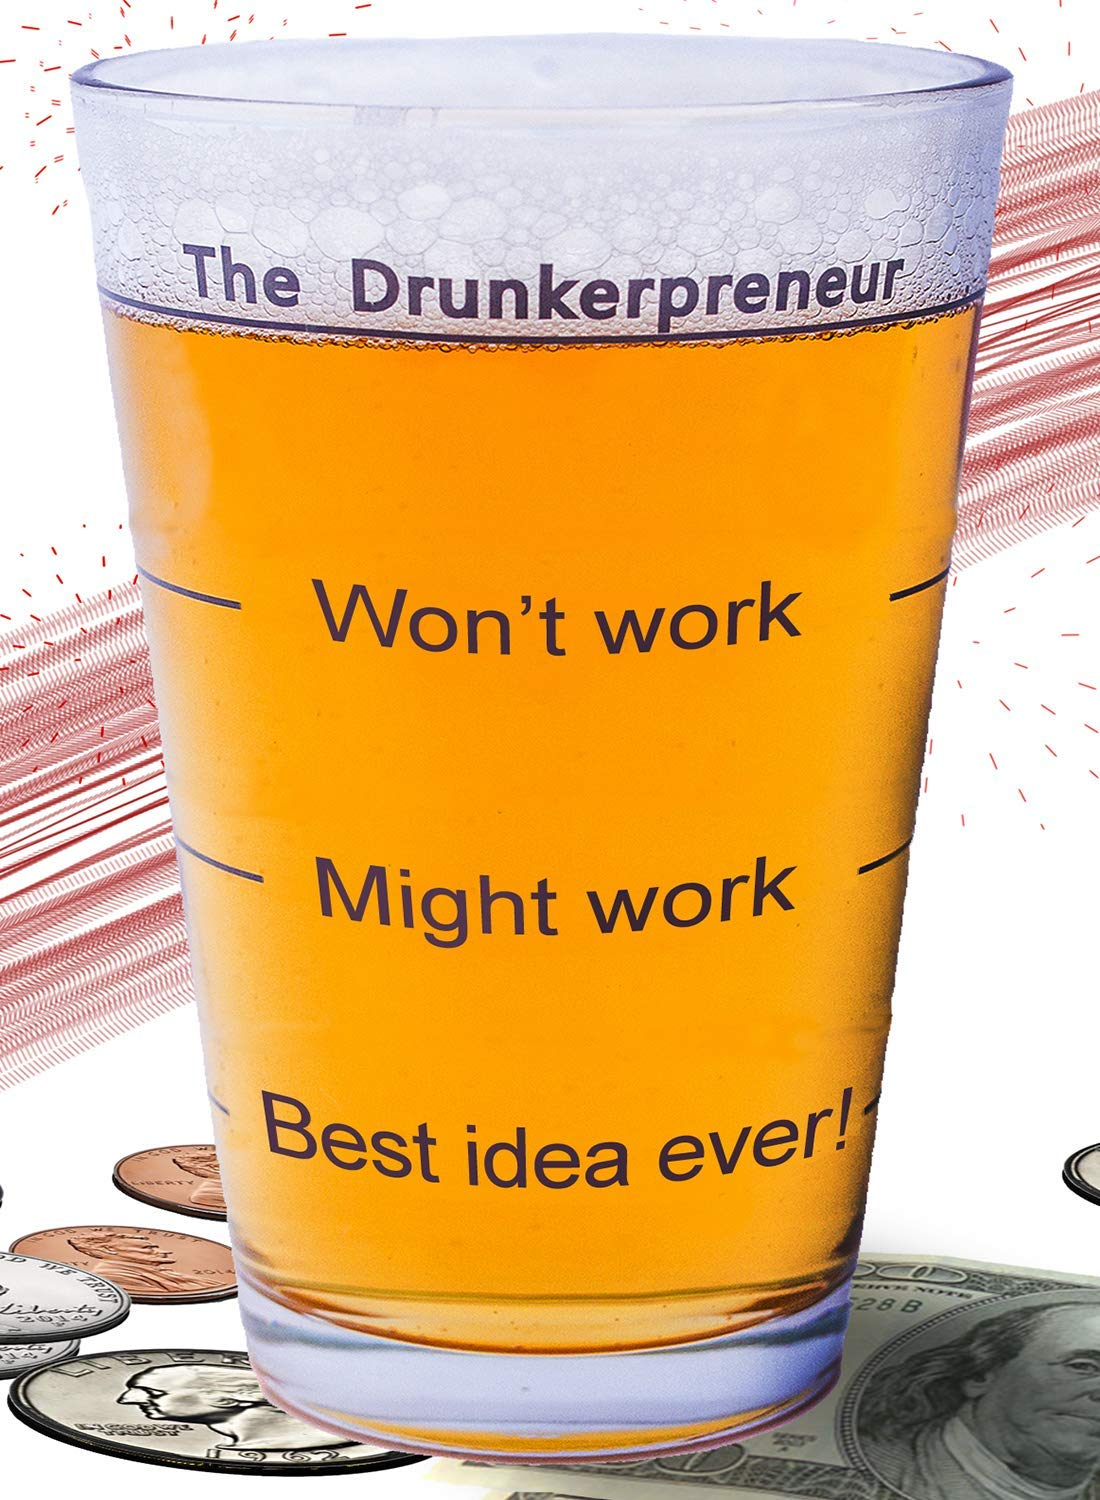 Funny Brainstorming Glass - the DrunkerPreneur Beer Mug. Holiday Present for Dad, Entrepreneurs, Boss, Businessman and Woman. 16 Ounces Pint Glasses Beer Gifts Gift for entrepreneurs